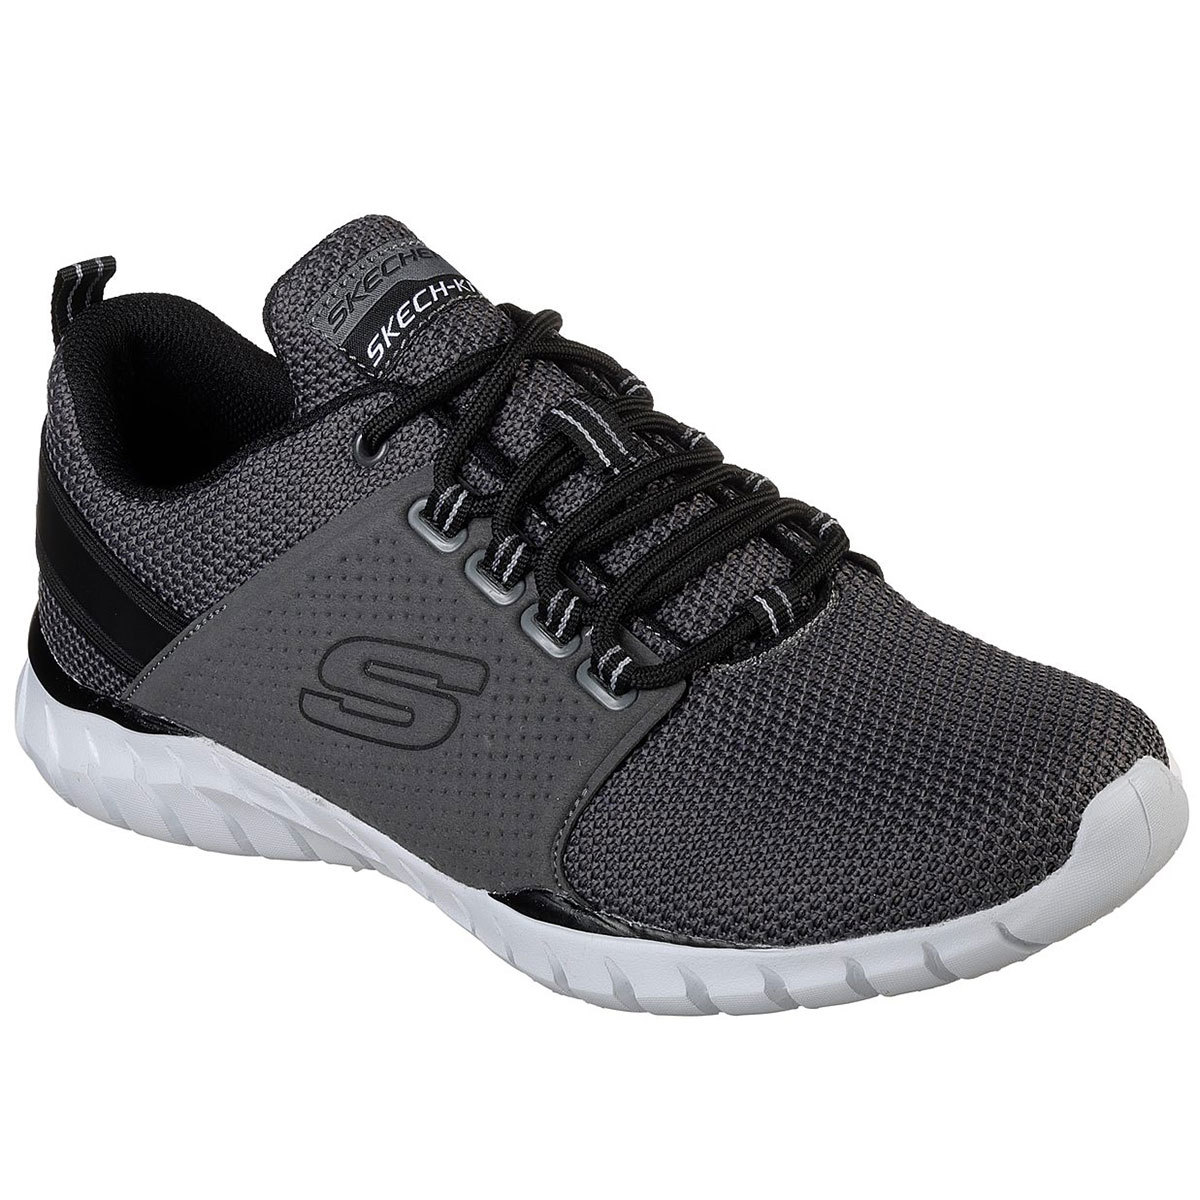 "Skechers Men's Overhaul A "" Primba Sneakers - Black, 13"